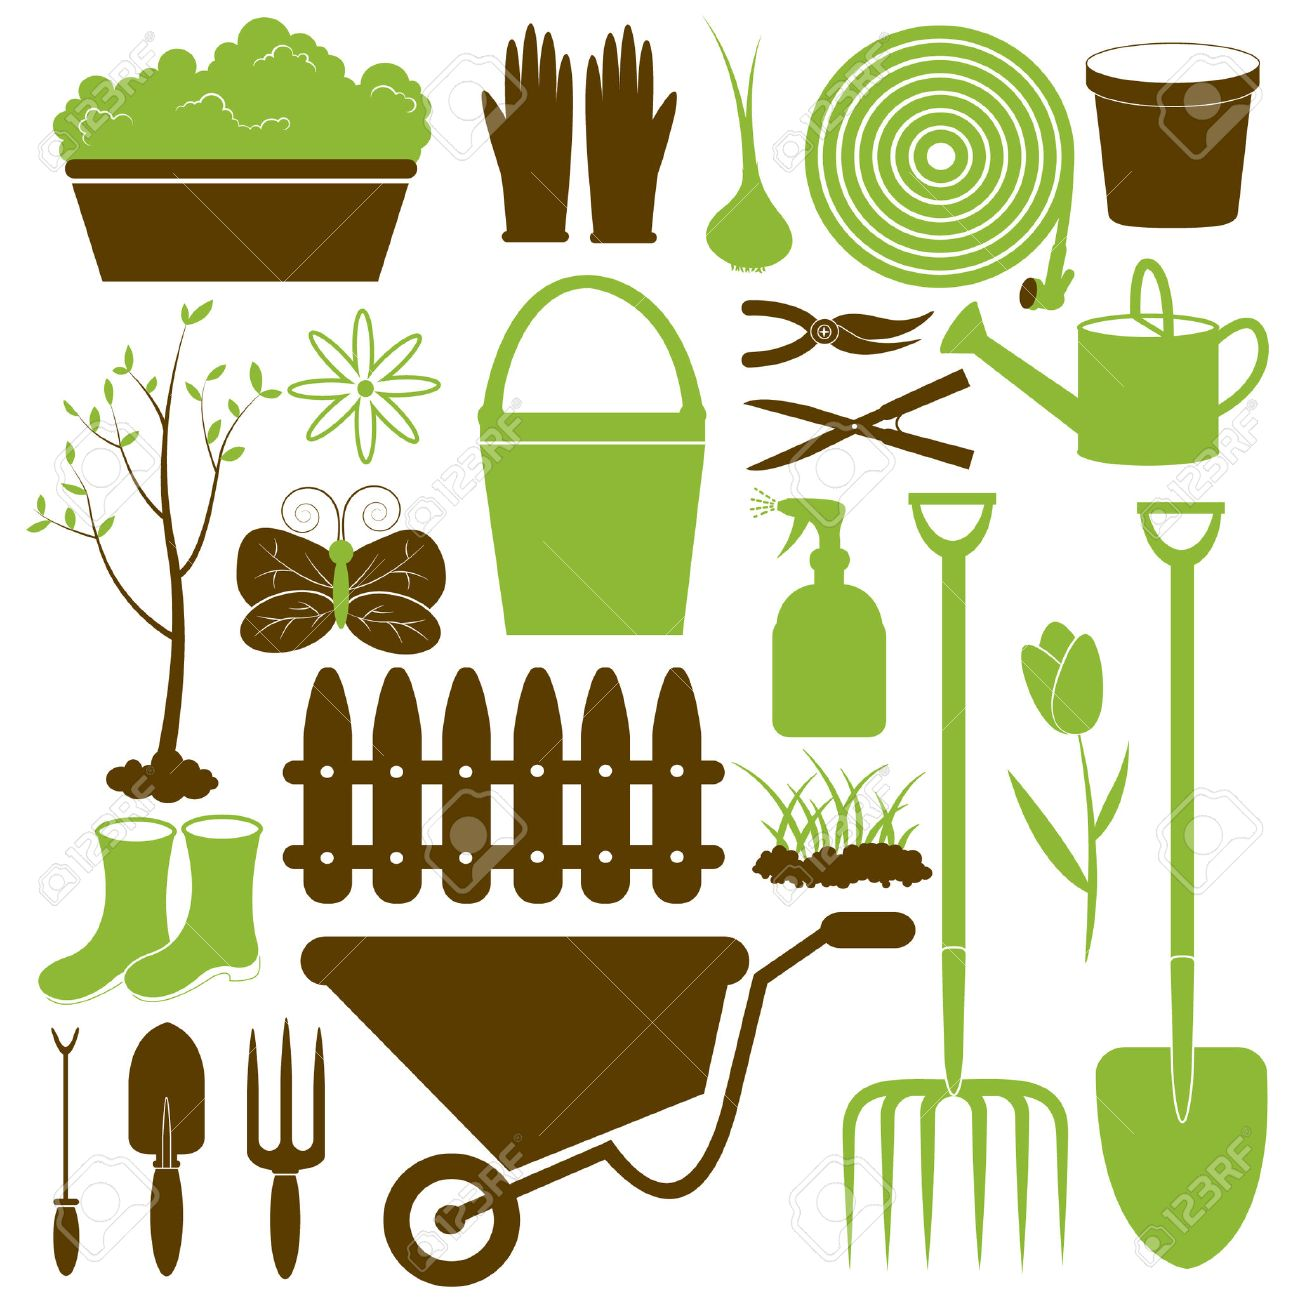 grass cutter cliparts stock vector and royalty grass grass cutter vector gardening icons collection